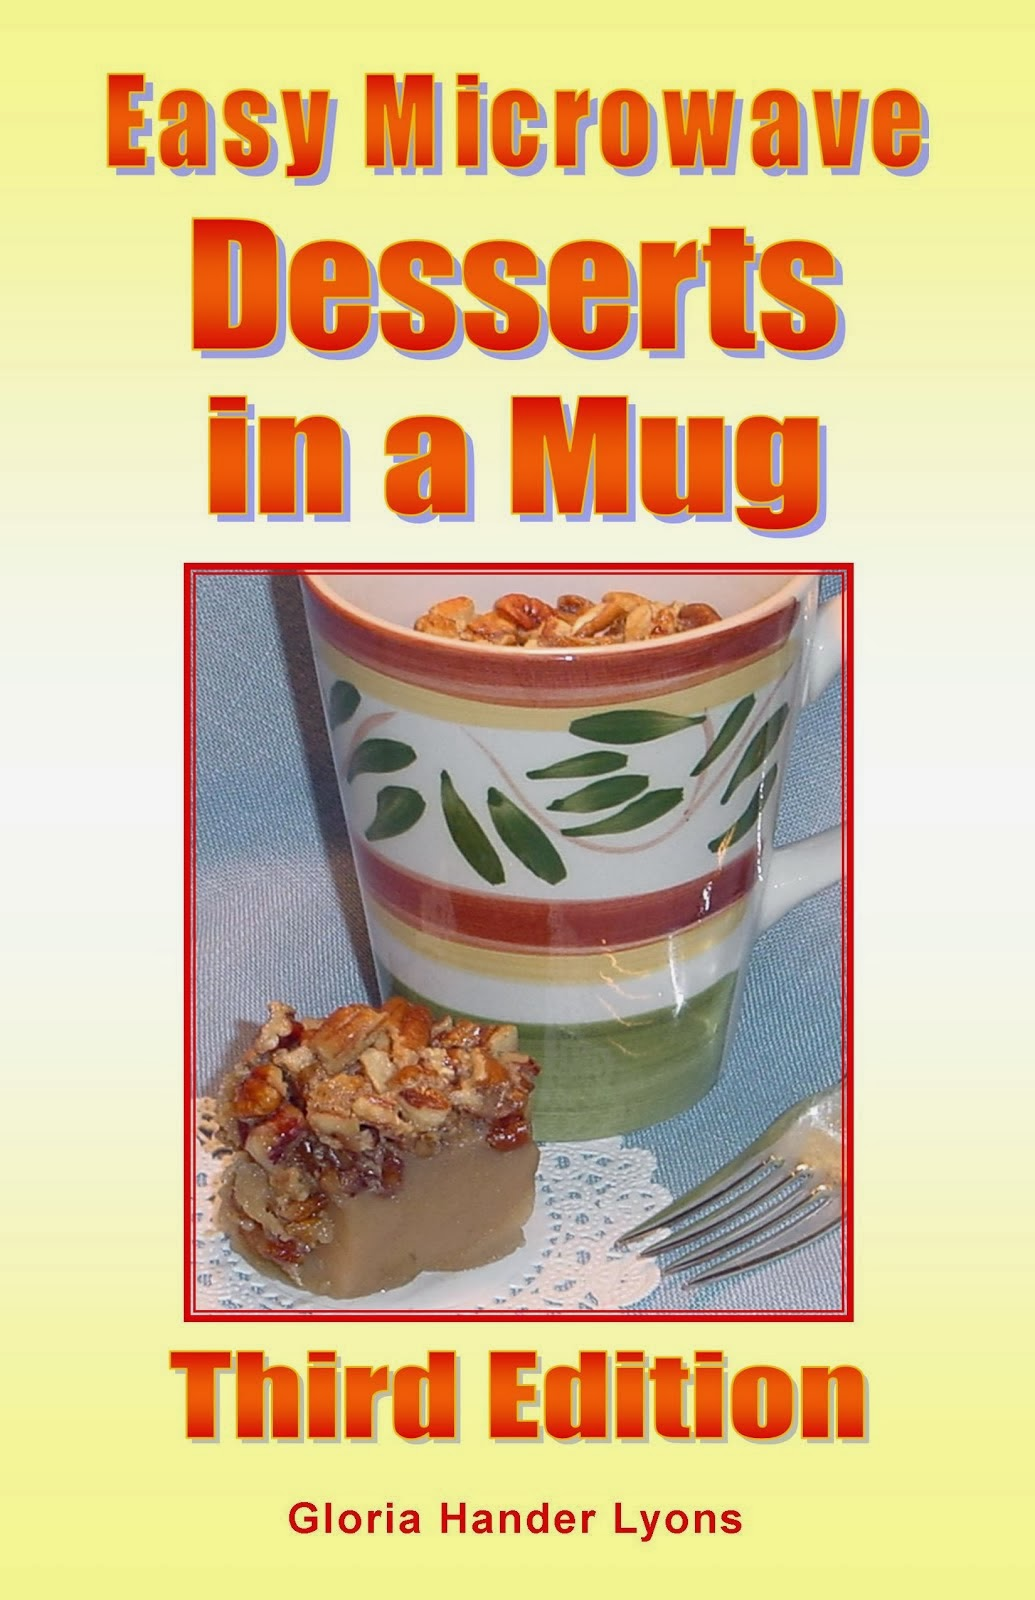 You Might also like Easy Microwave Desserts in a Mug